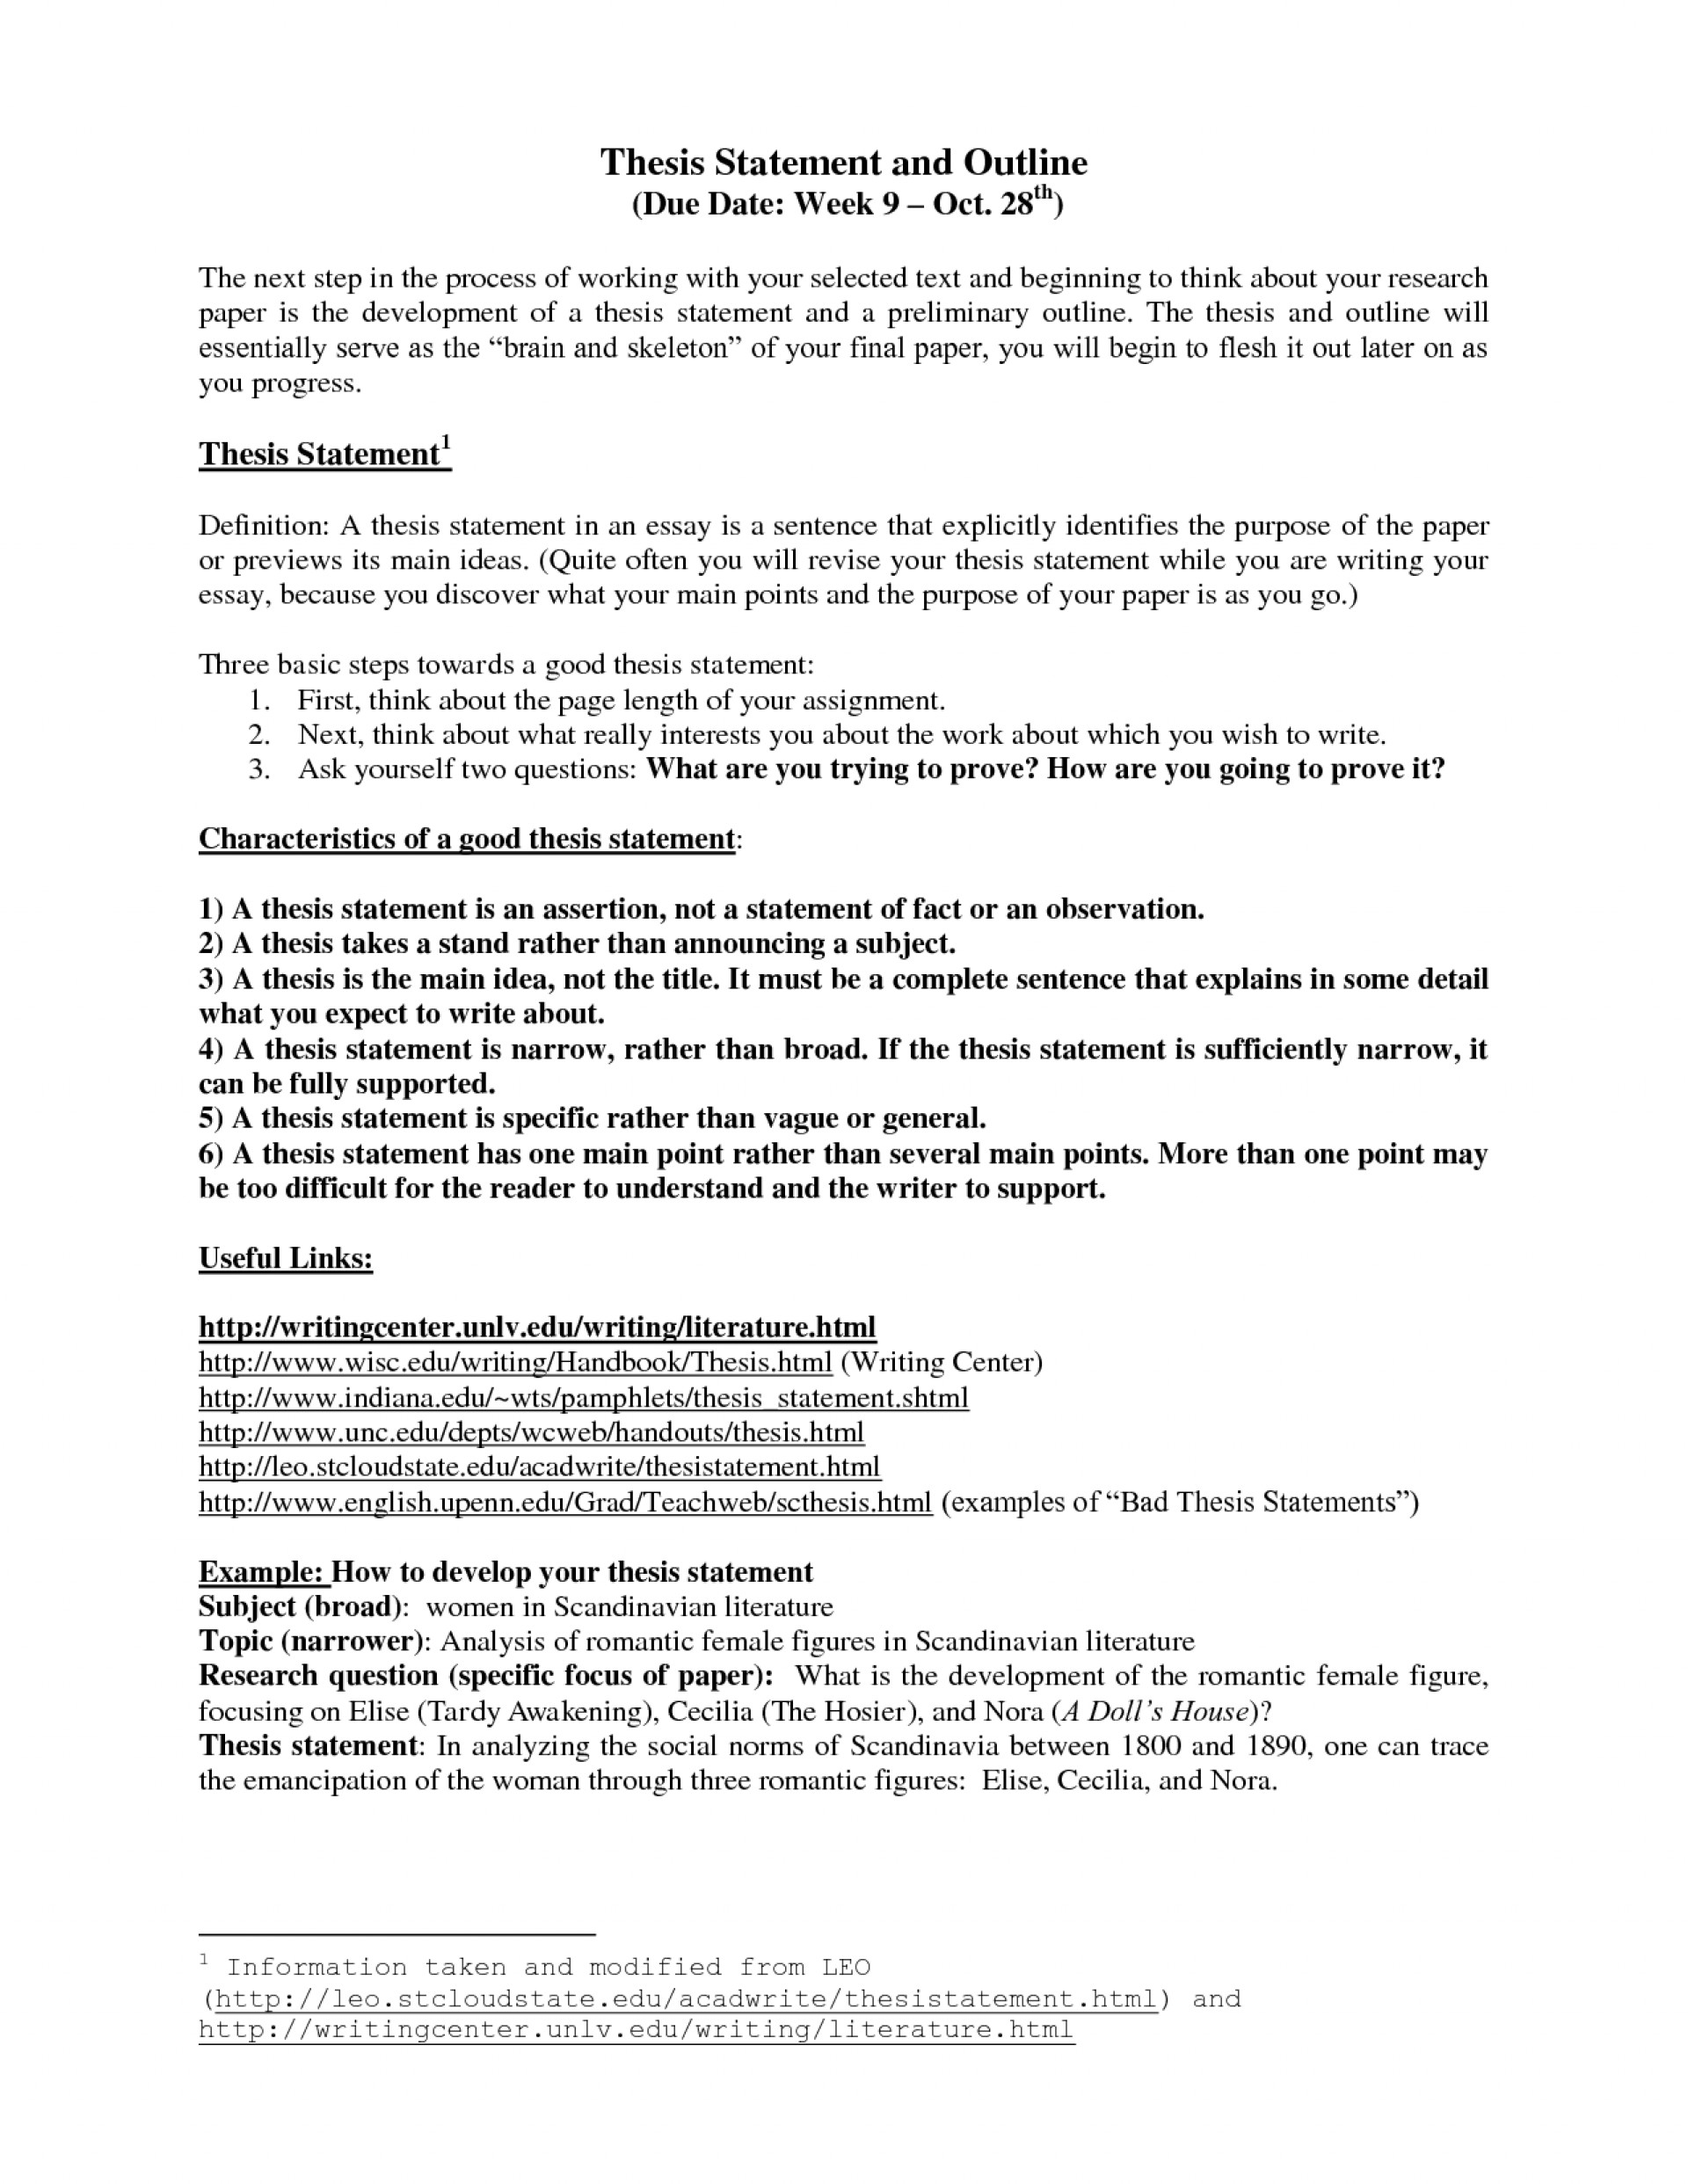 008 Thesis Statement And Outline Template Wx8nmdez How To Start Research Paper Outstanding A Examples Off Write Acknowledgement In Introduction 1920